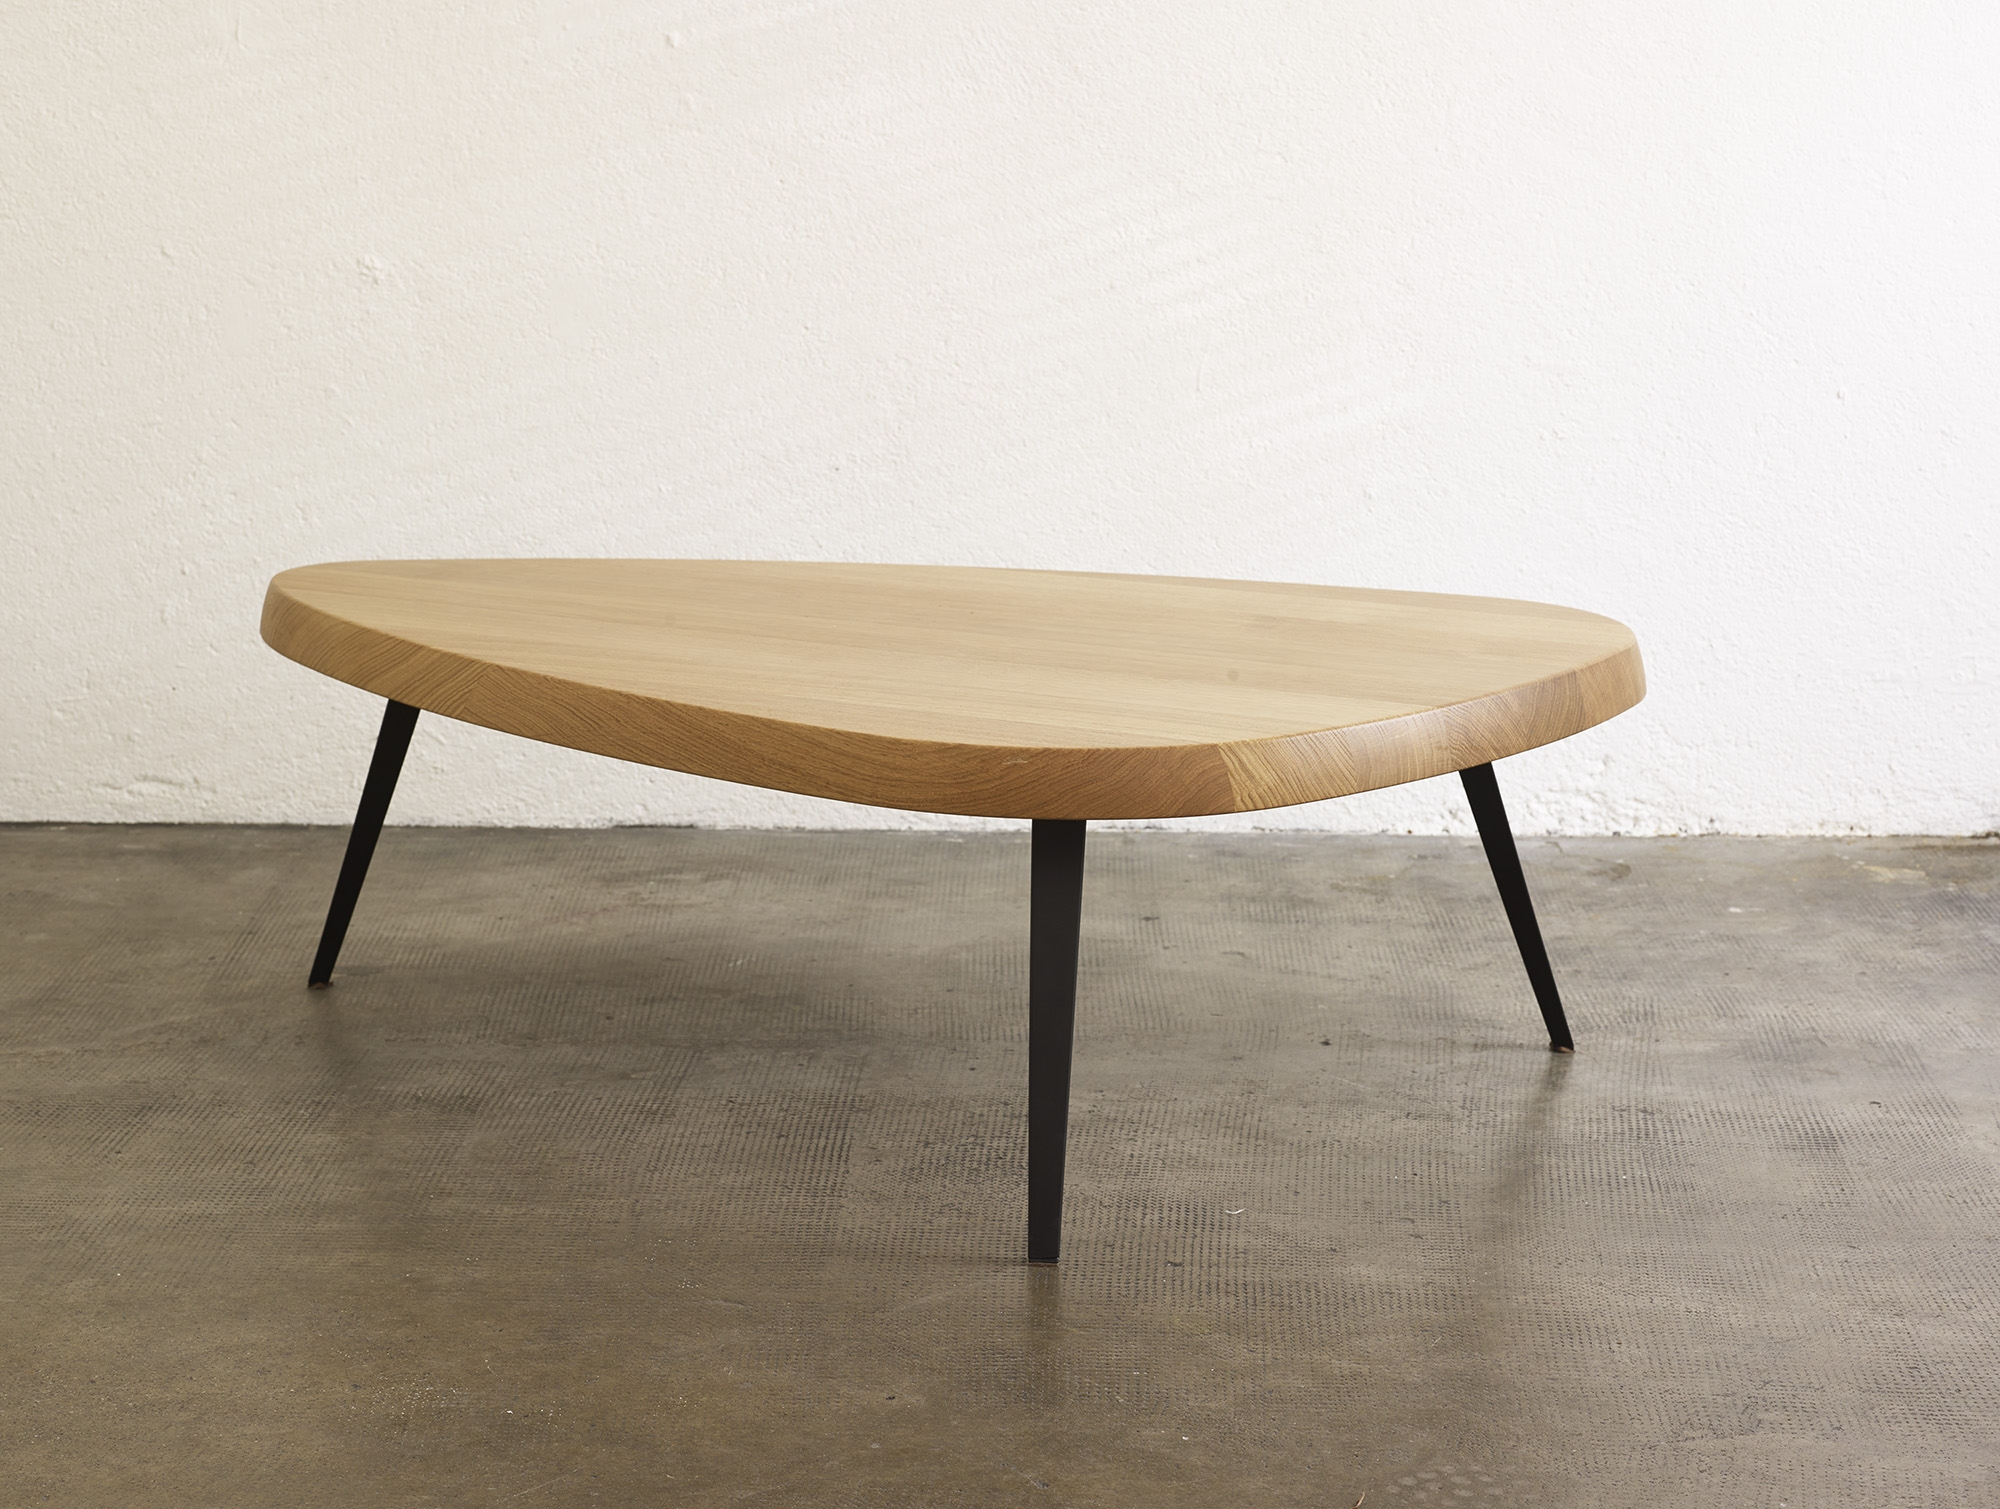 table-basse-527-de-charlotte-perriand-ed-cassina-image-02